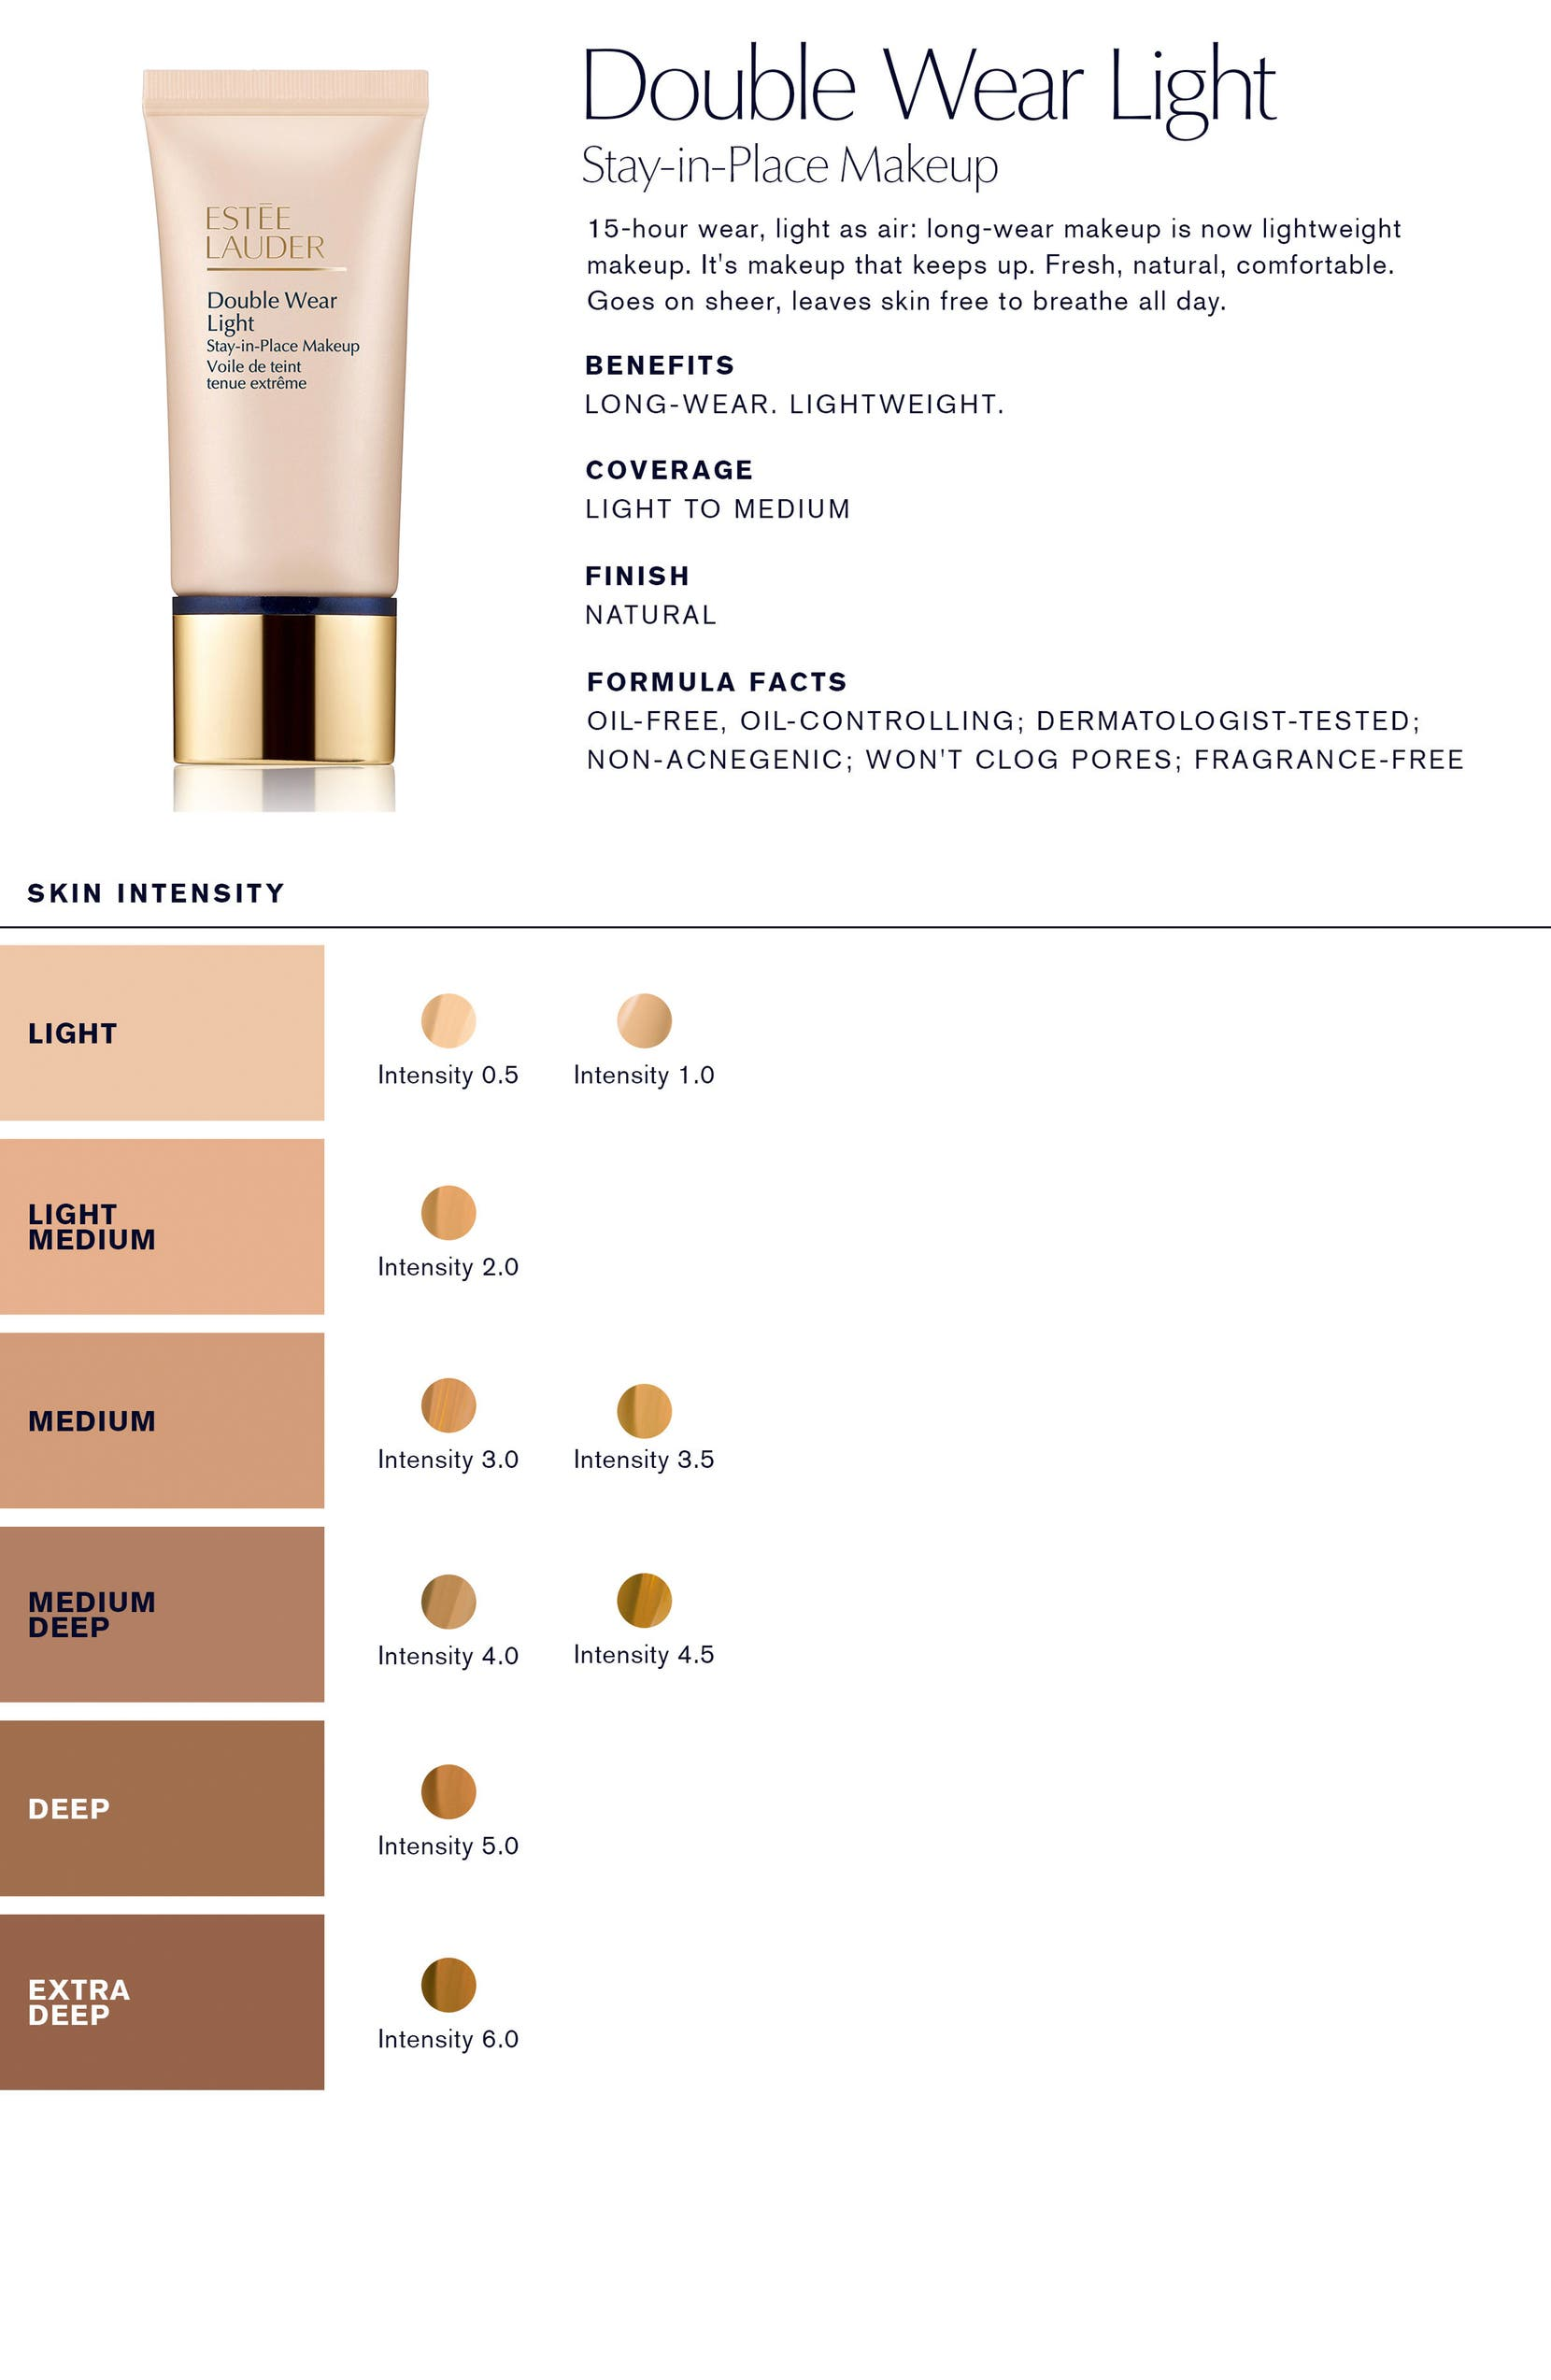 Estee Lauder Double Wear Light Shade Guide Centralroots